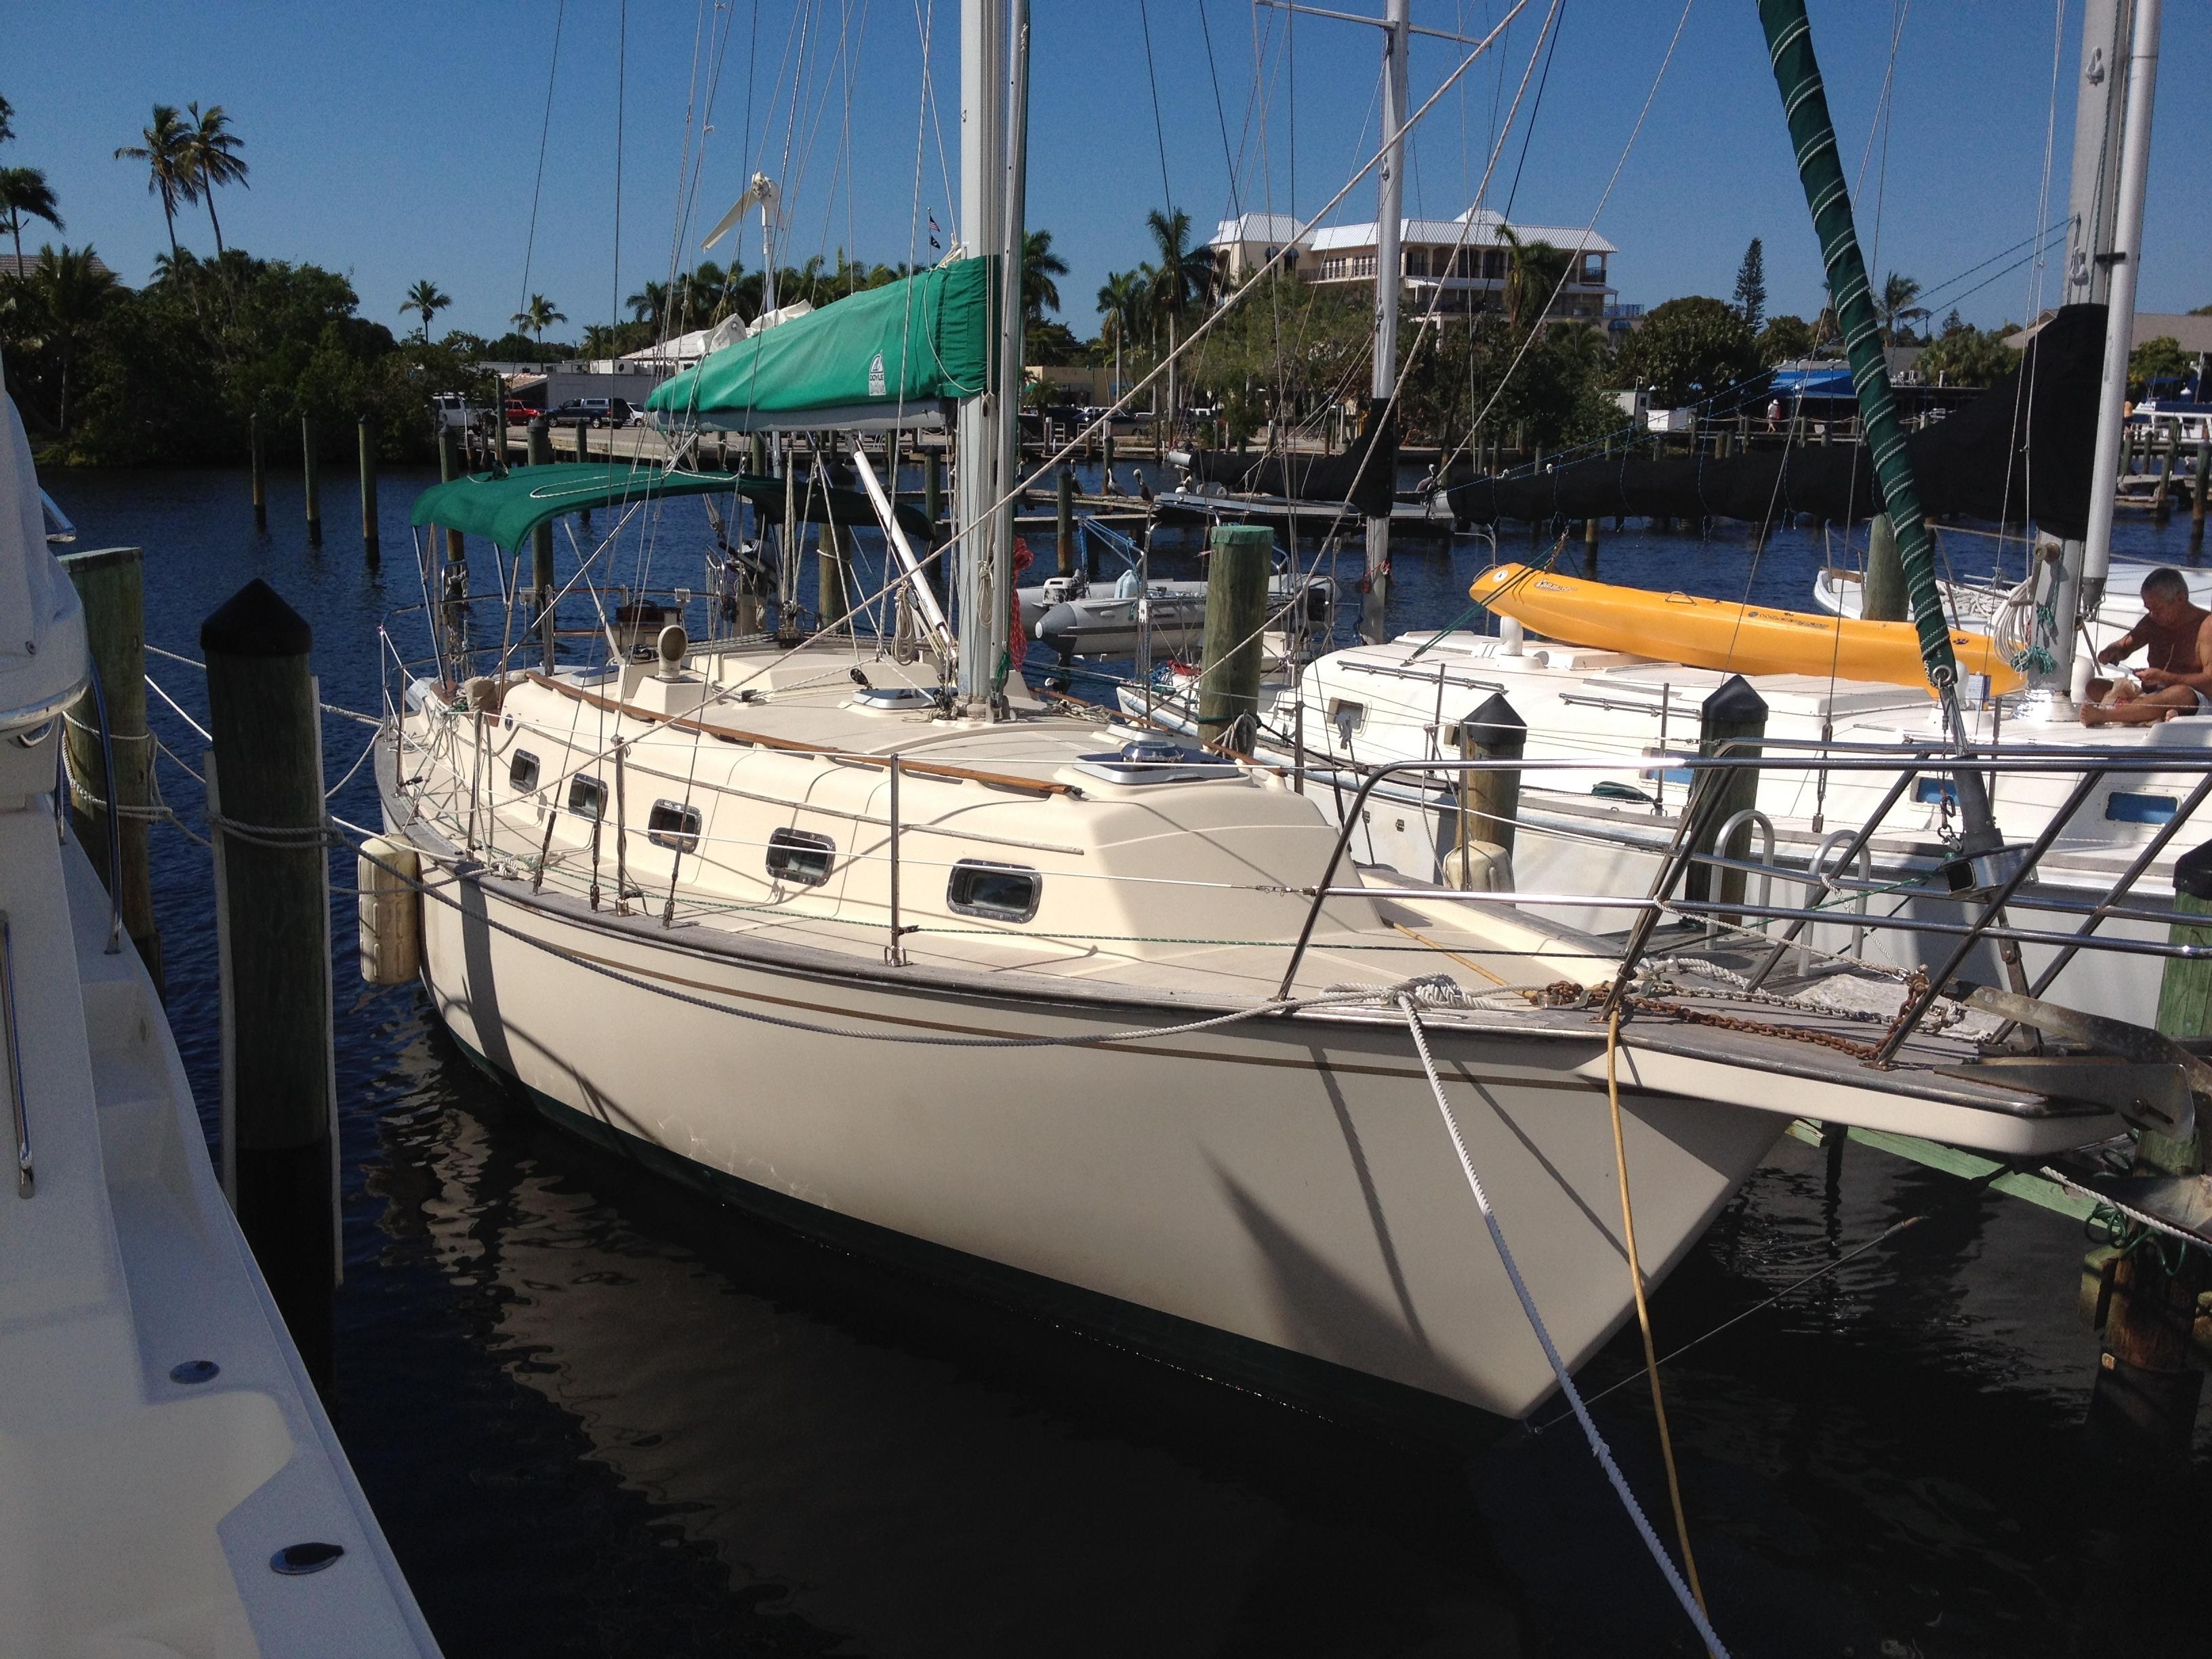 1991 Island Packet 32 Sloop